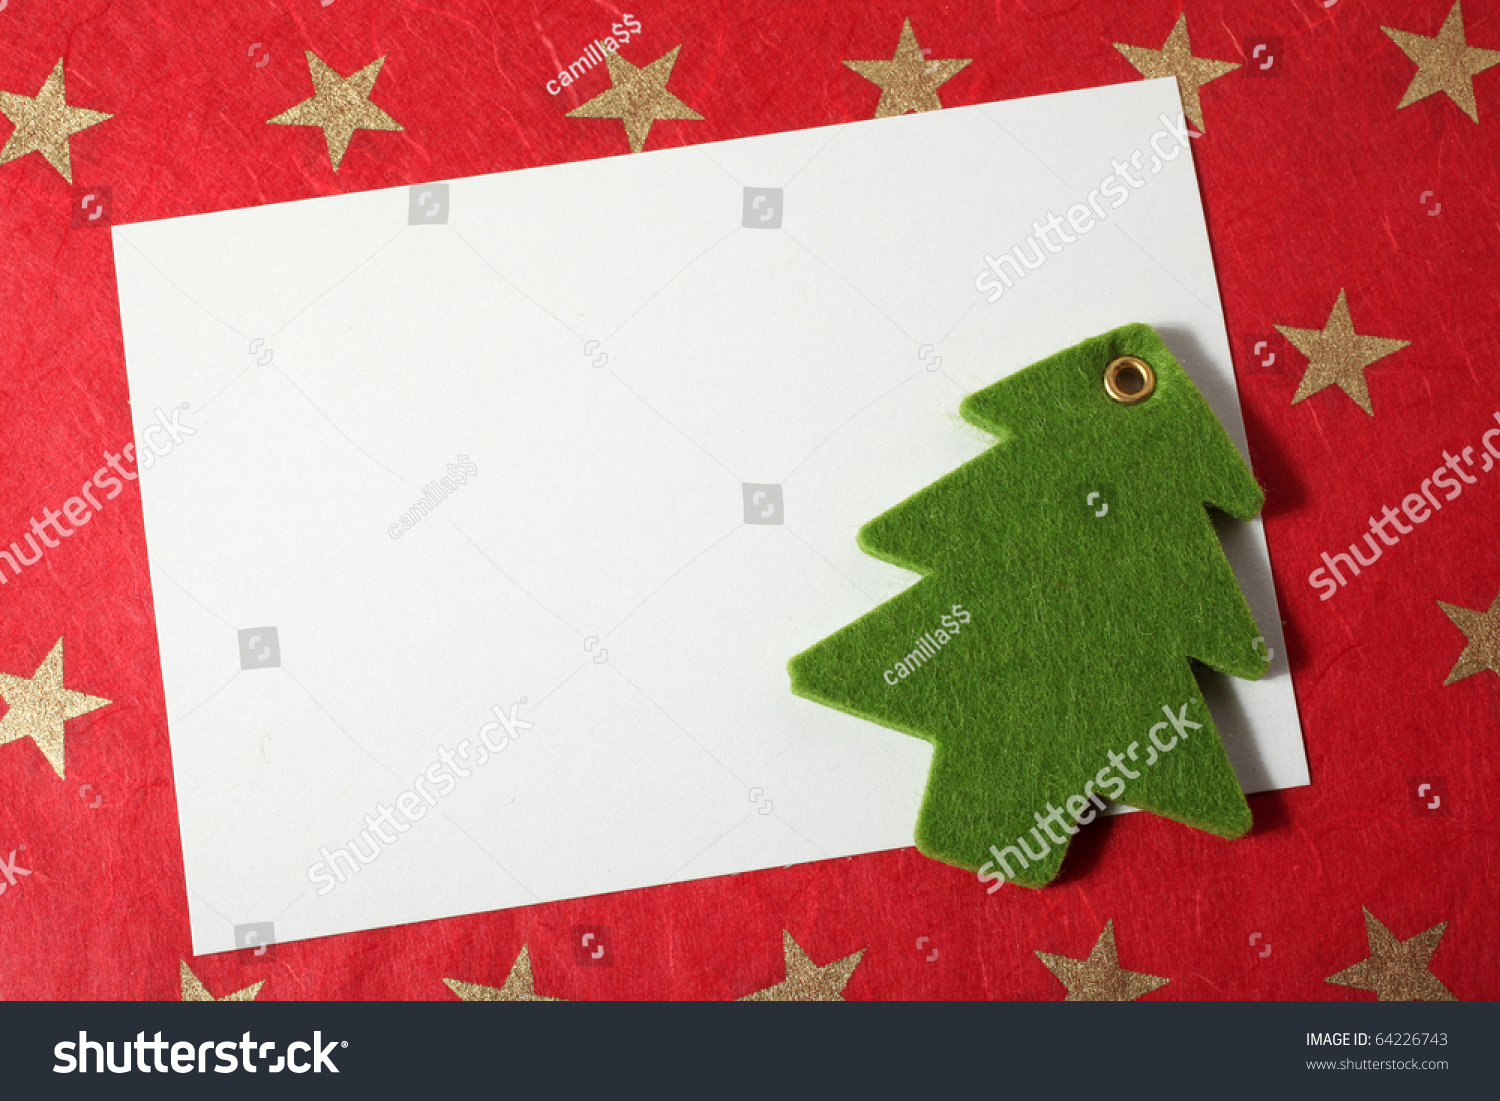 Christmas Card Decoration Insert Text Stock Photo (Edit Now ...